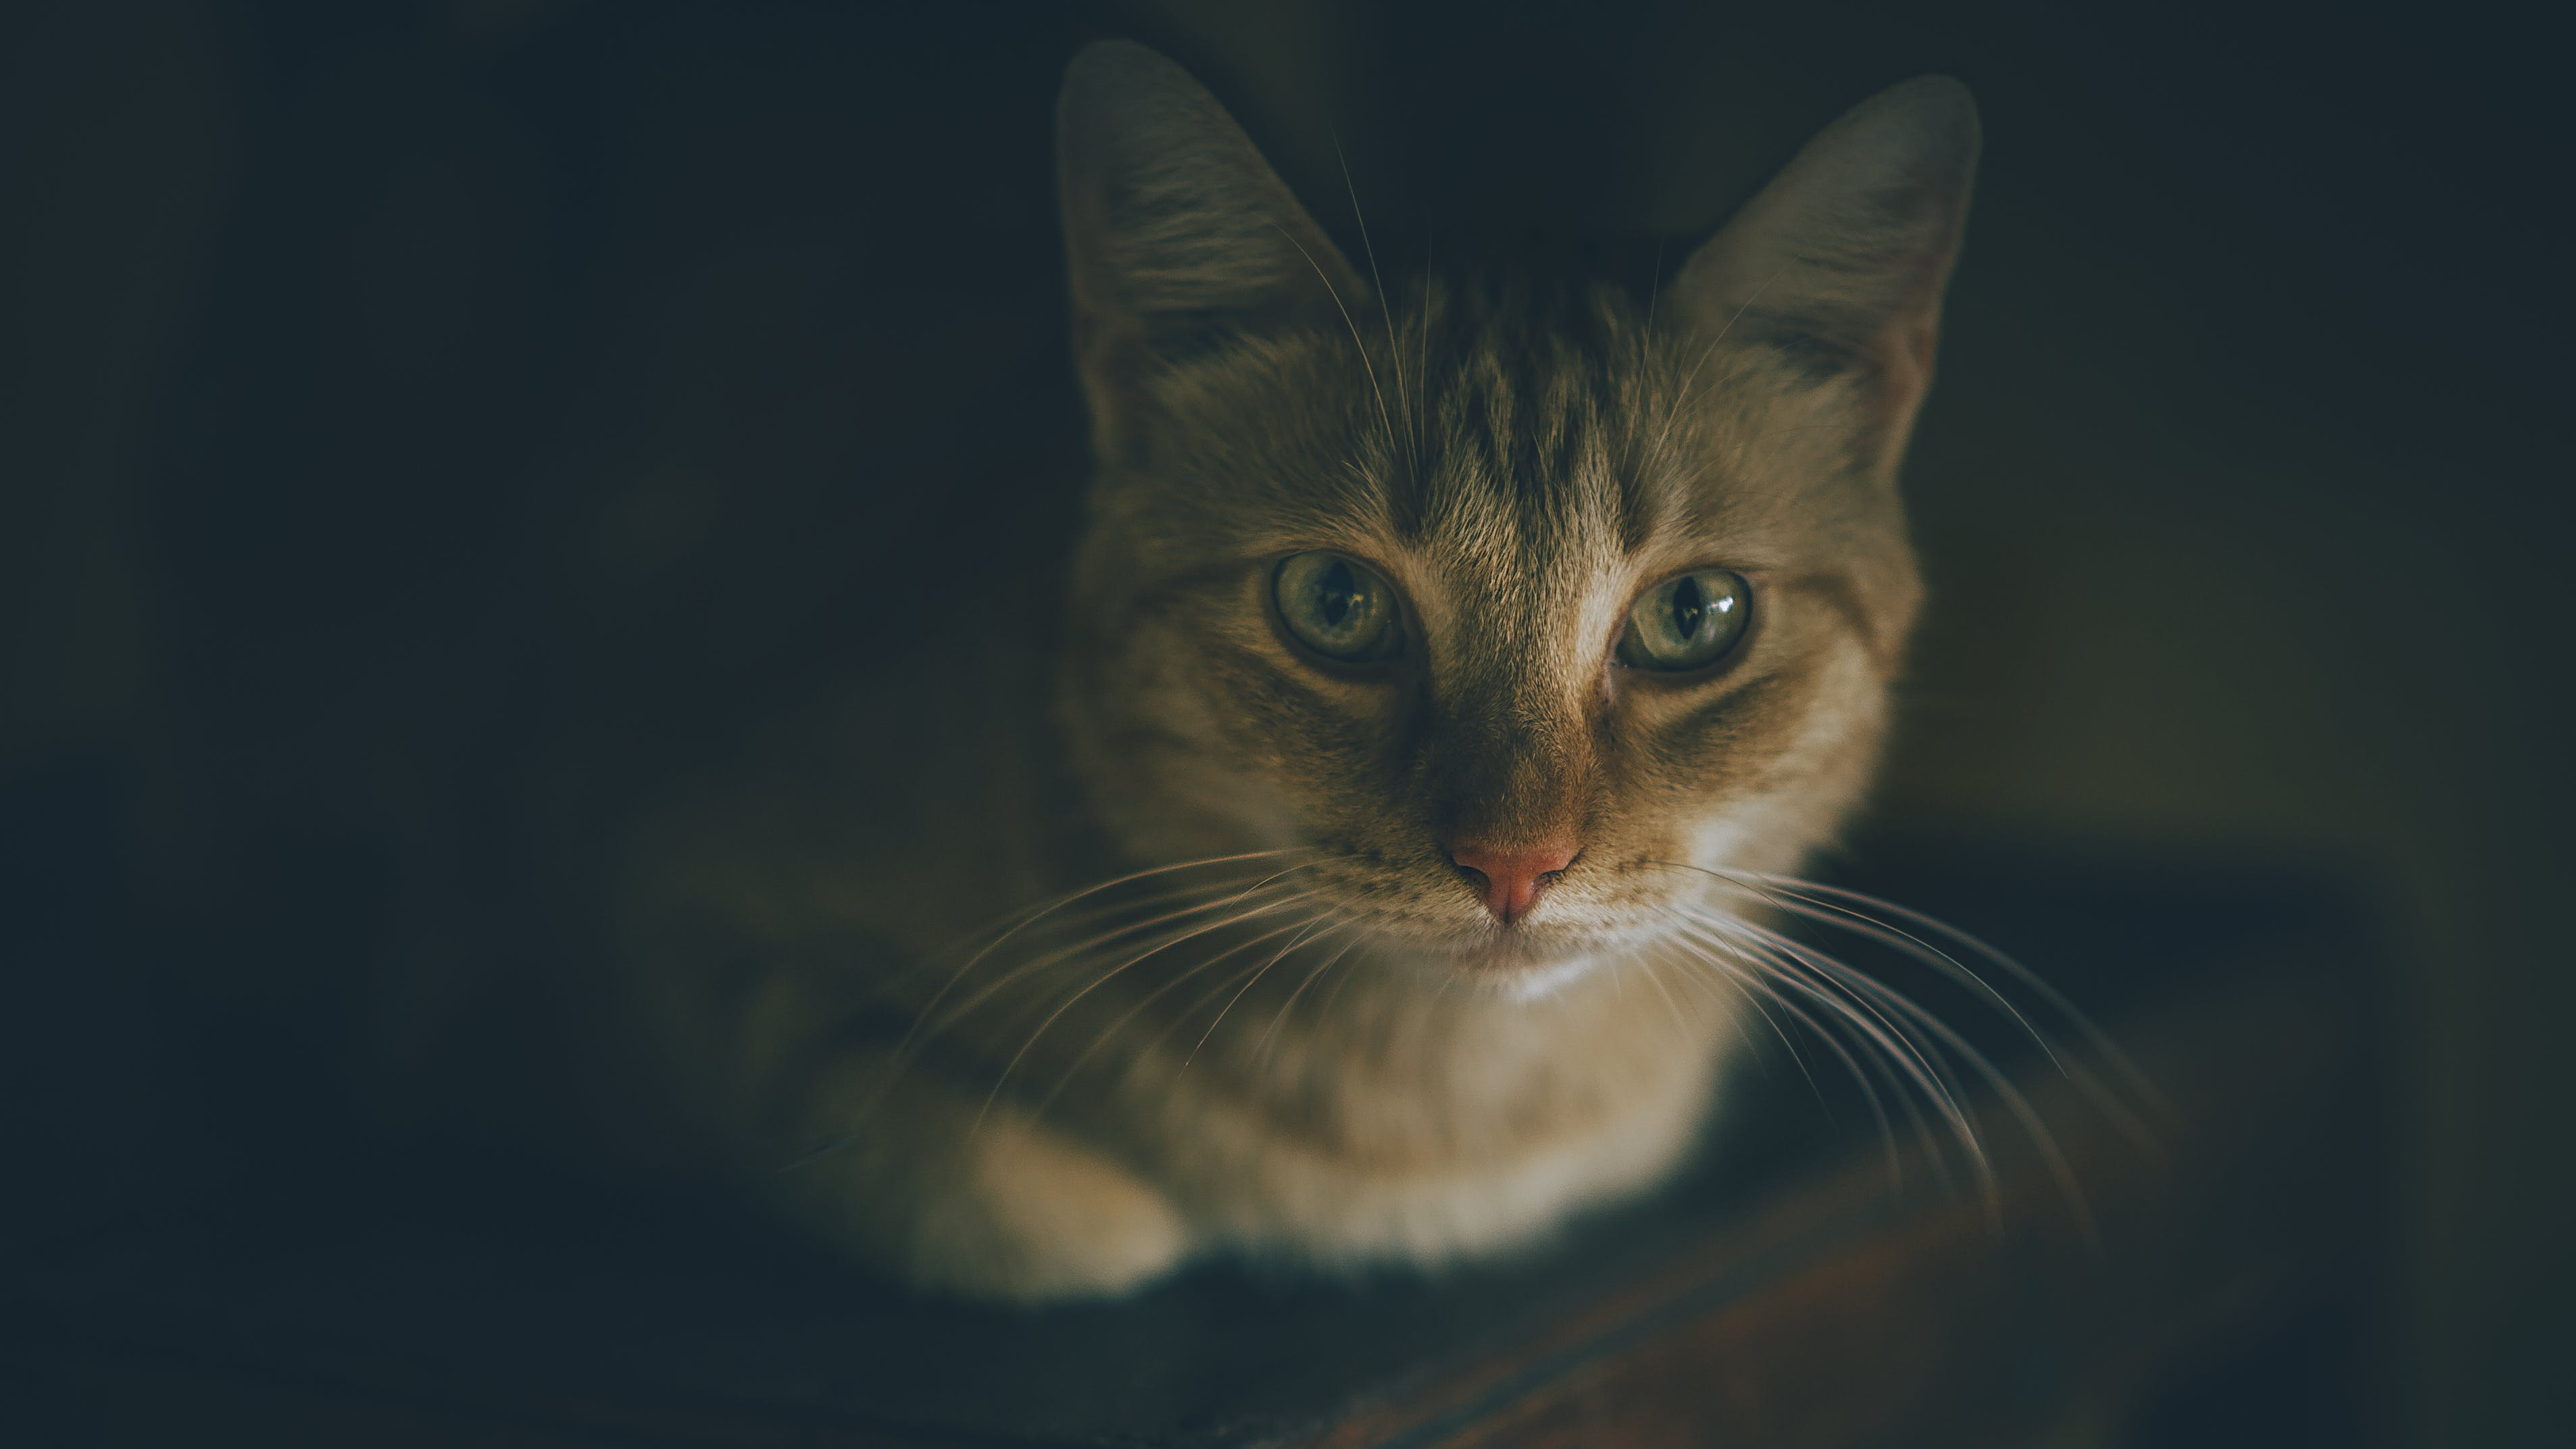 Shallow Focus Photography of Tabby Cat